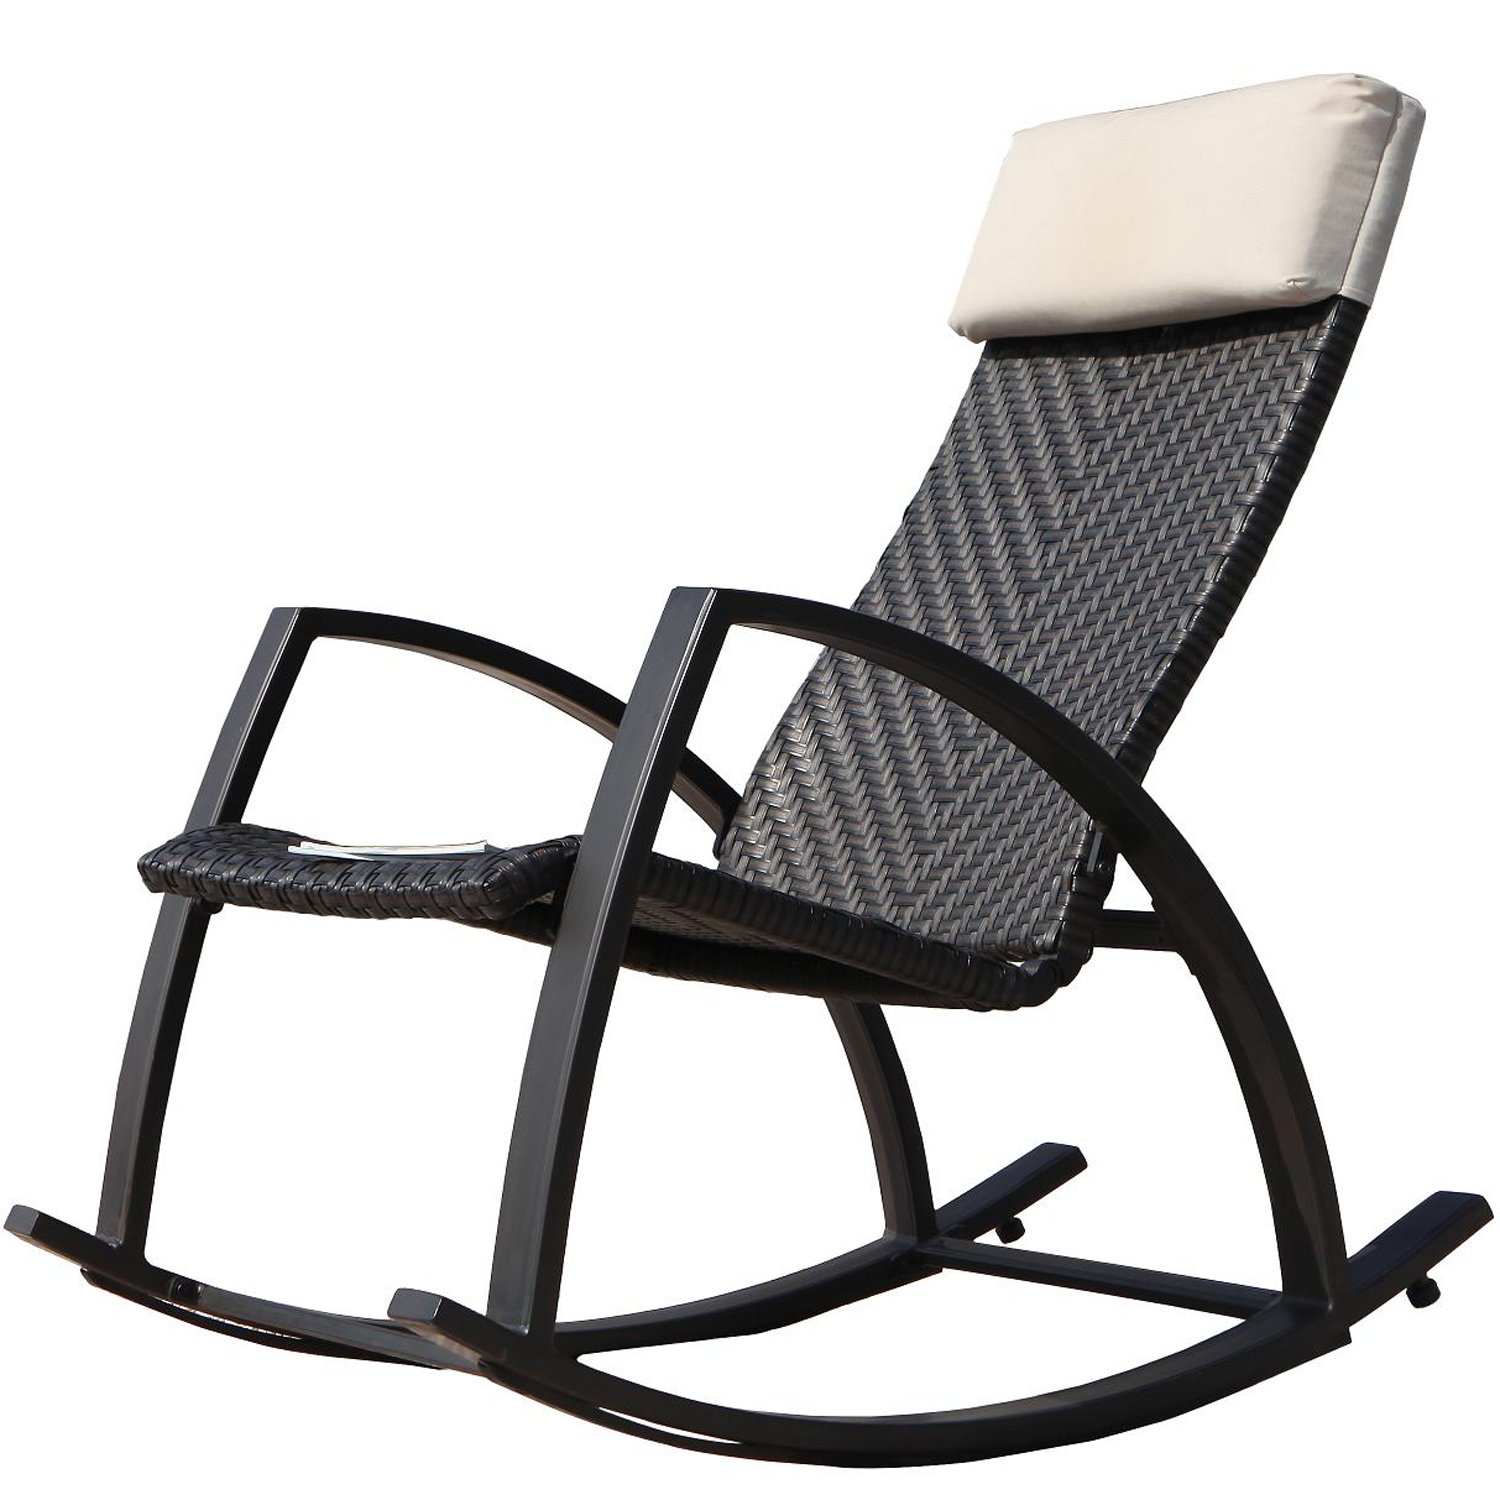 50 Best Rocking Folding Lawn Chair